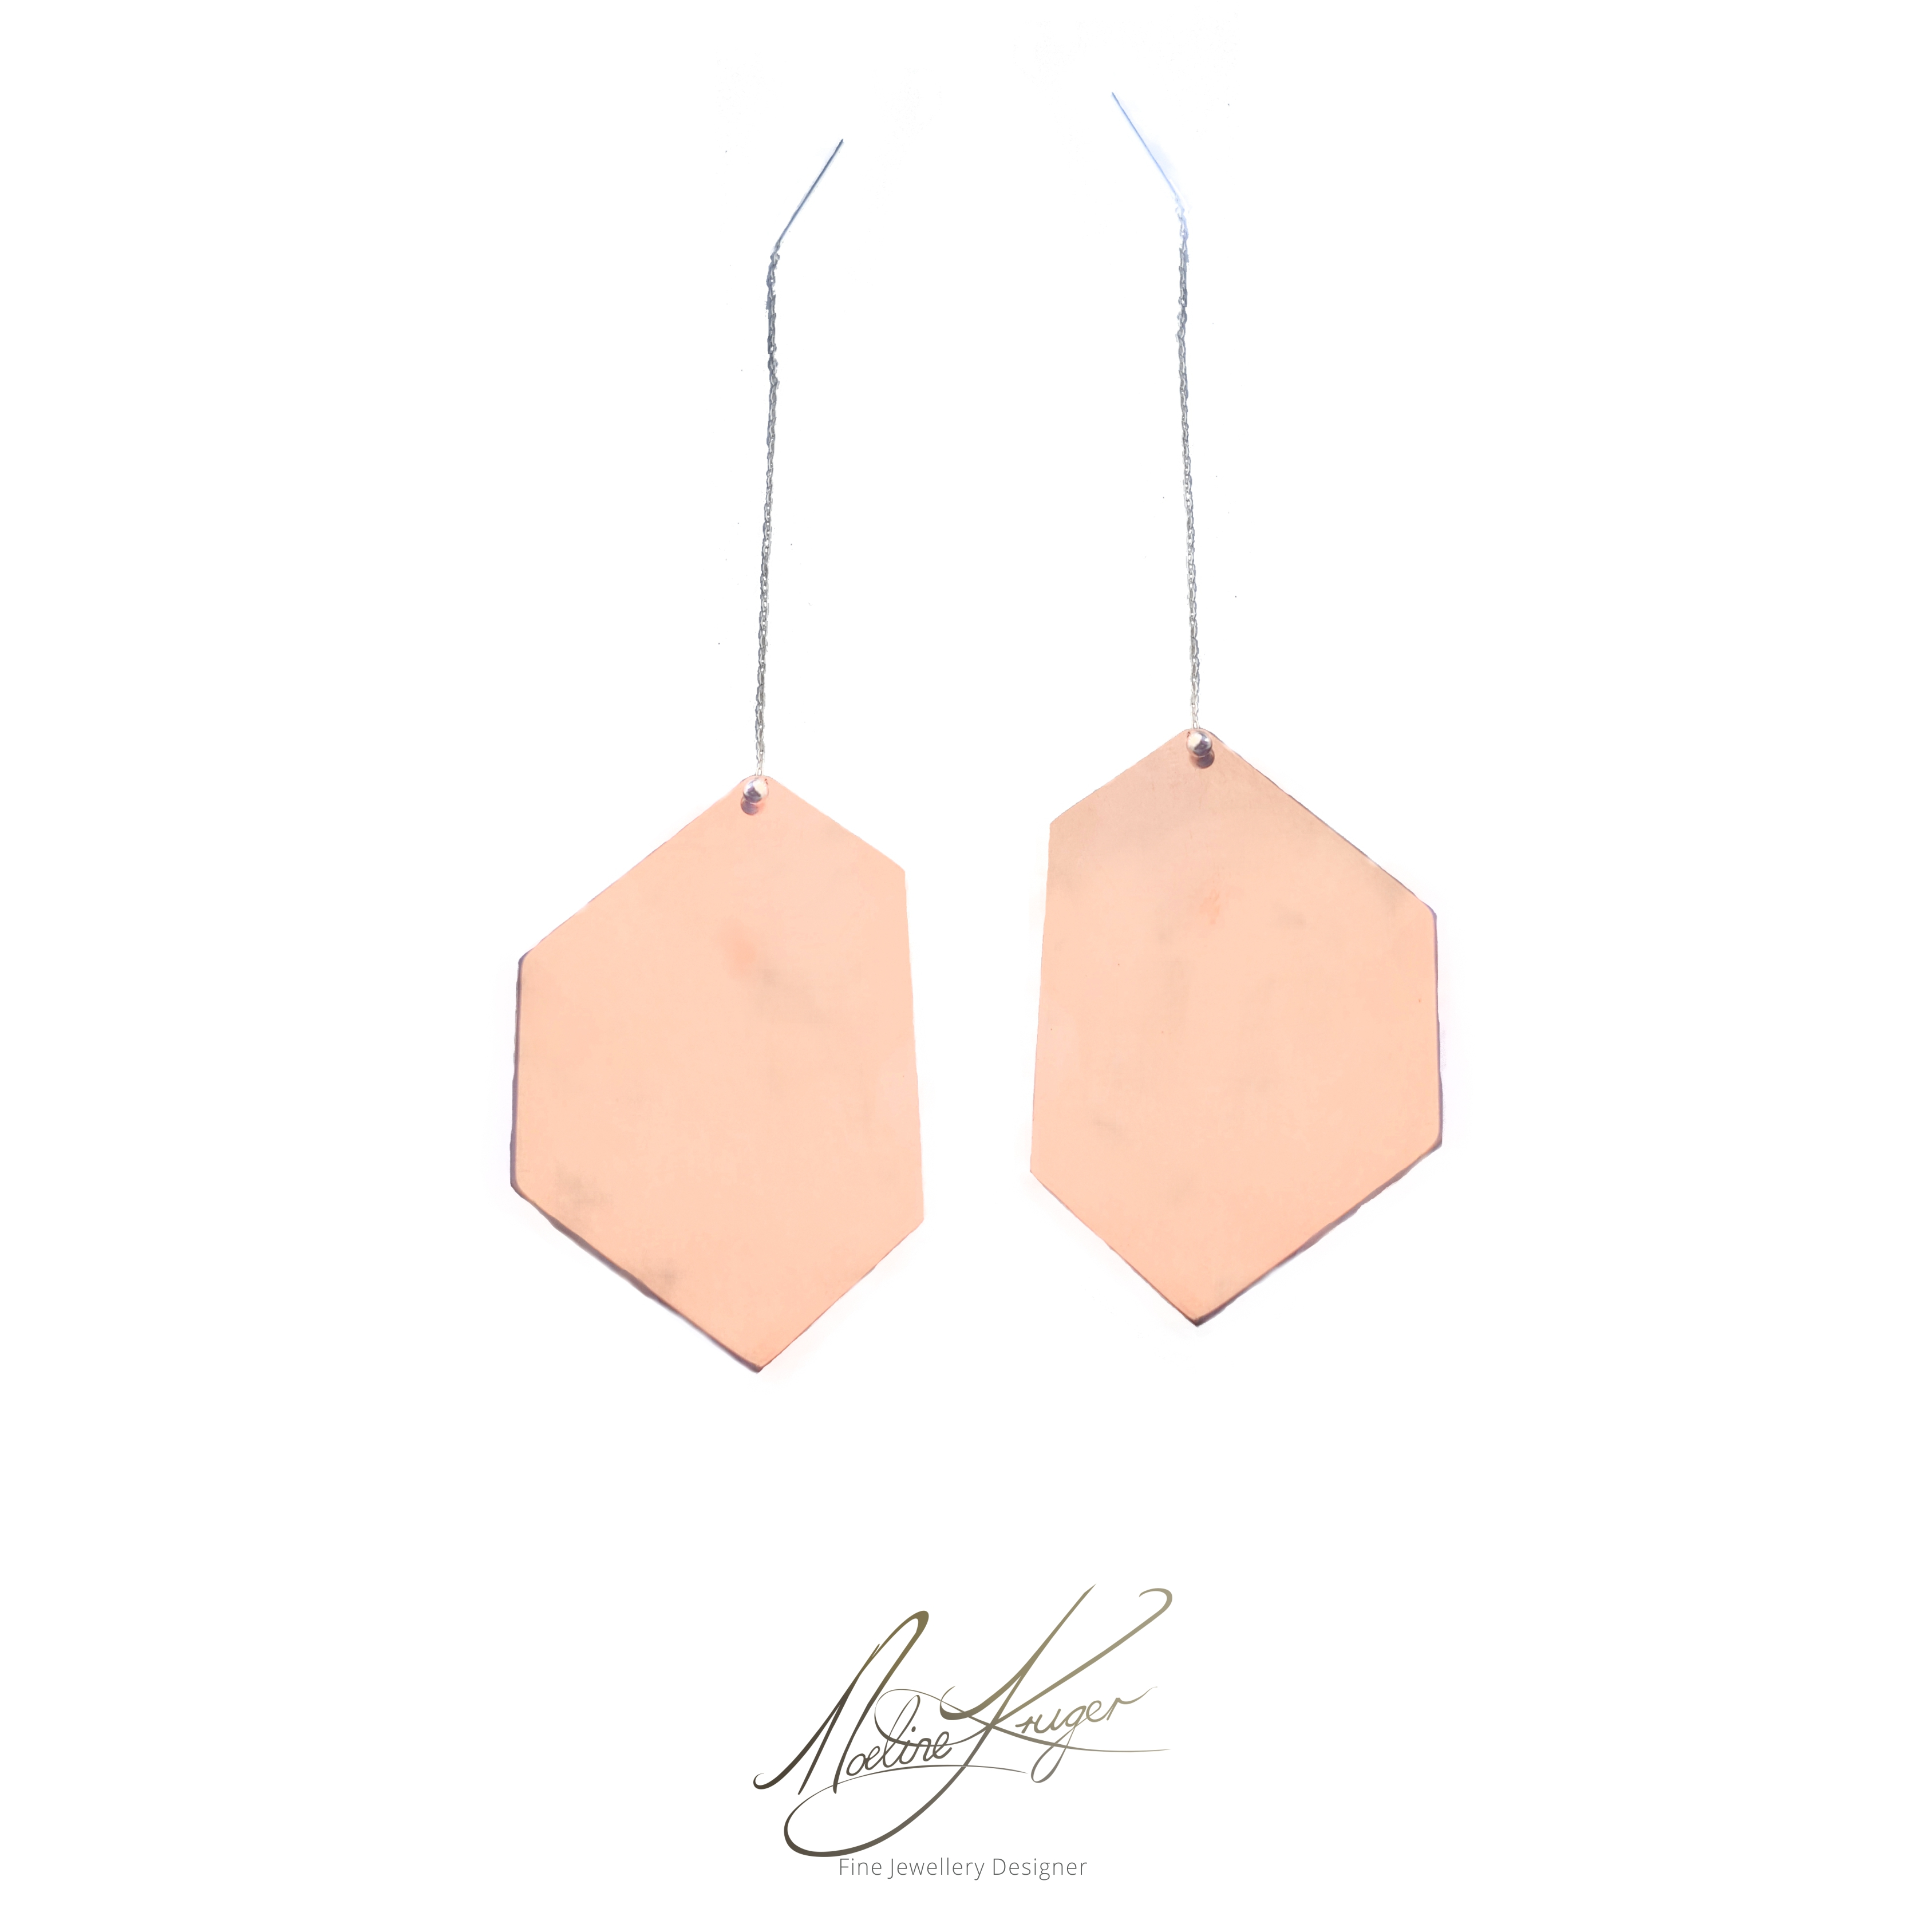 These geometric minimalist copper earrings are totally unique and one of a kind. They are light and comfortable to wear. They are hand cut in unique forms with a lacquer finish. The posts and butterfly backs are made from sterling silver.